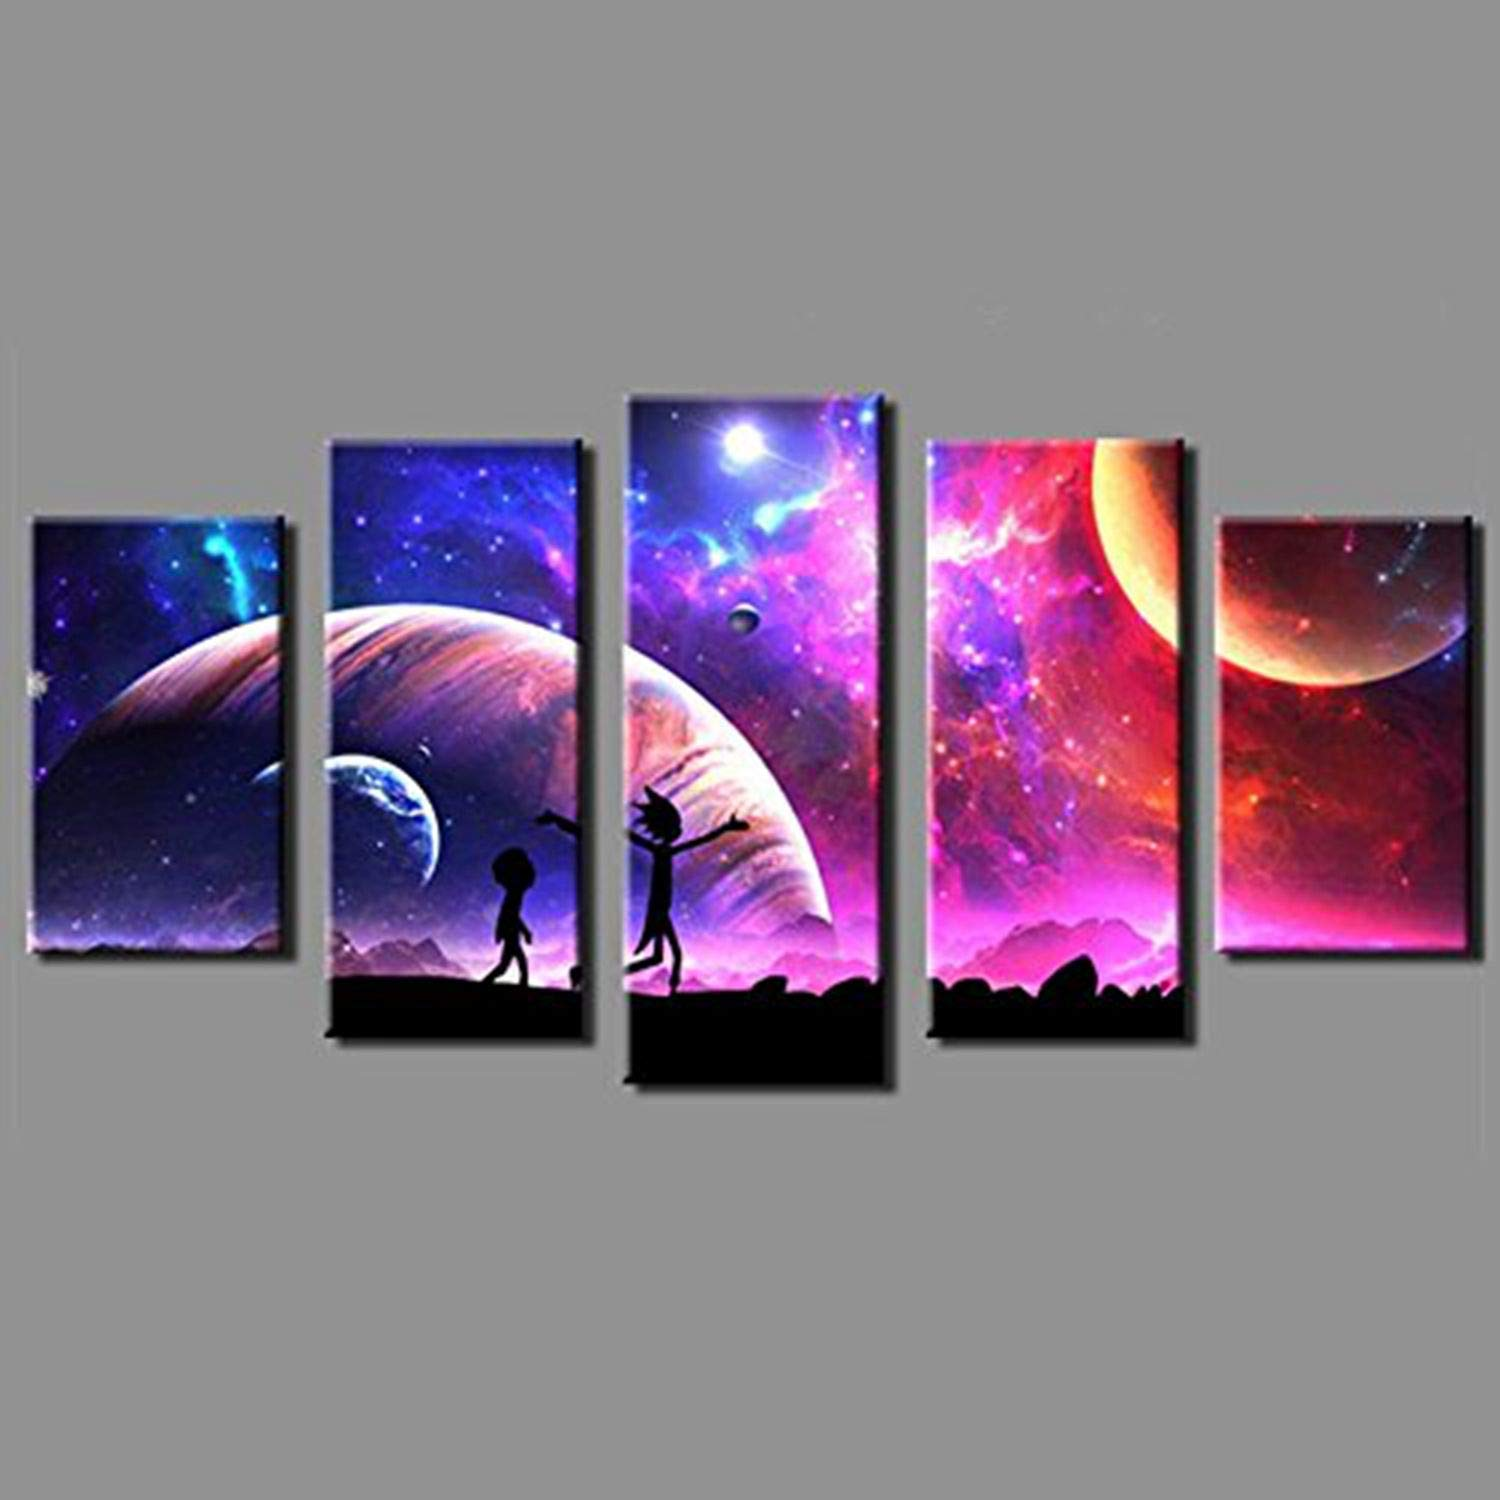 JESC Canvas Pictures Home Wall Art Framework Decor 5 Pieces Rick Space Planet Painting for Living Room HD Prints Animated Cartoon Poster (No Frame (Only Canvas, 30x50cmx2,30x70cmx2,30x80cmx1) …